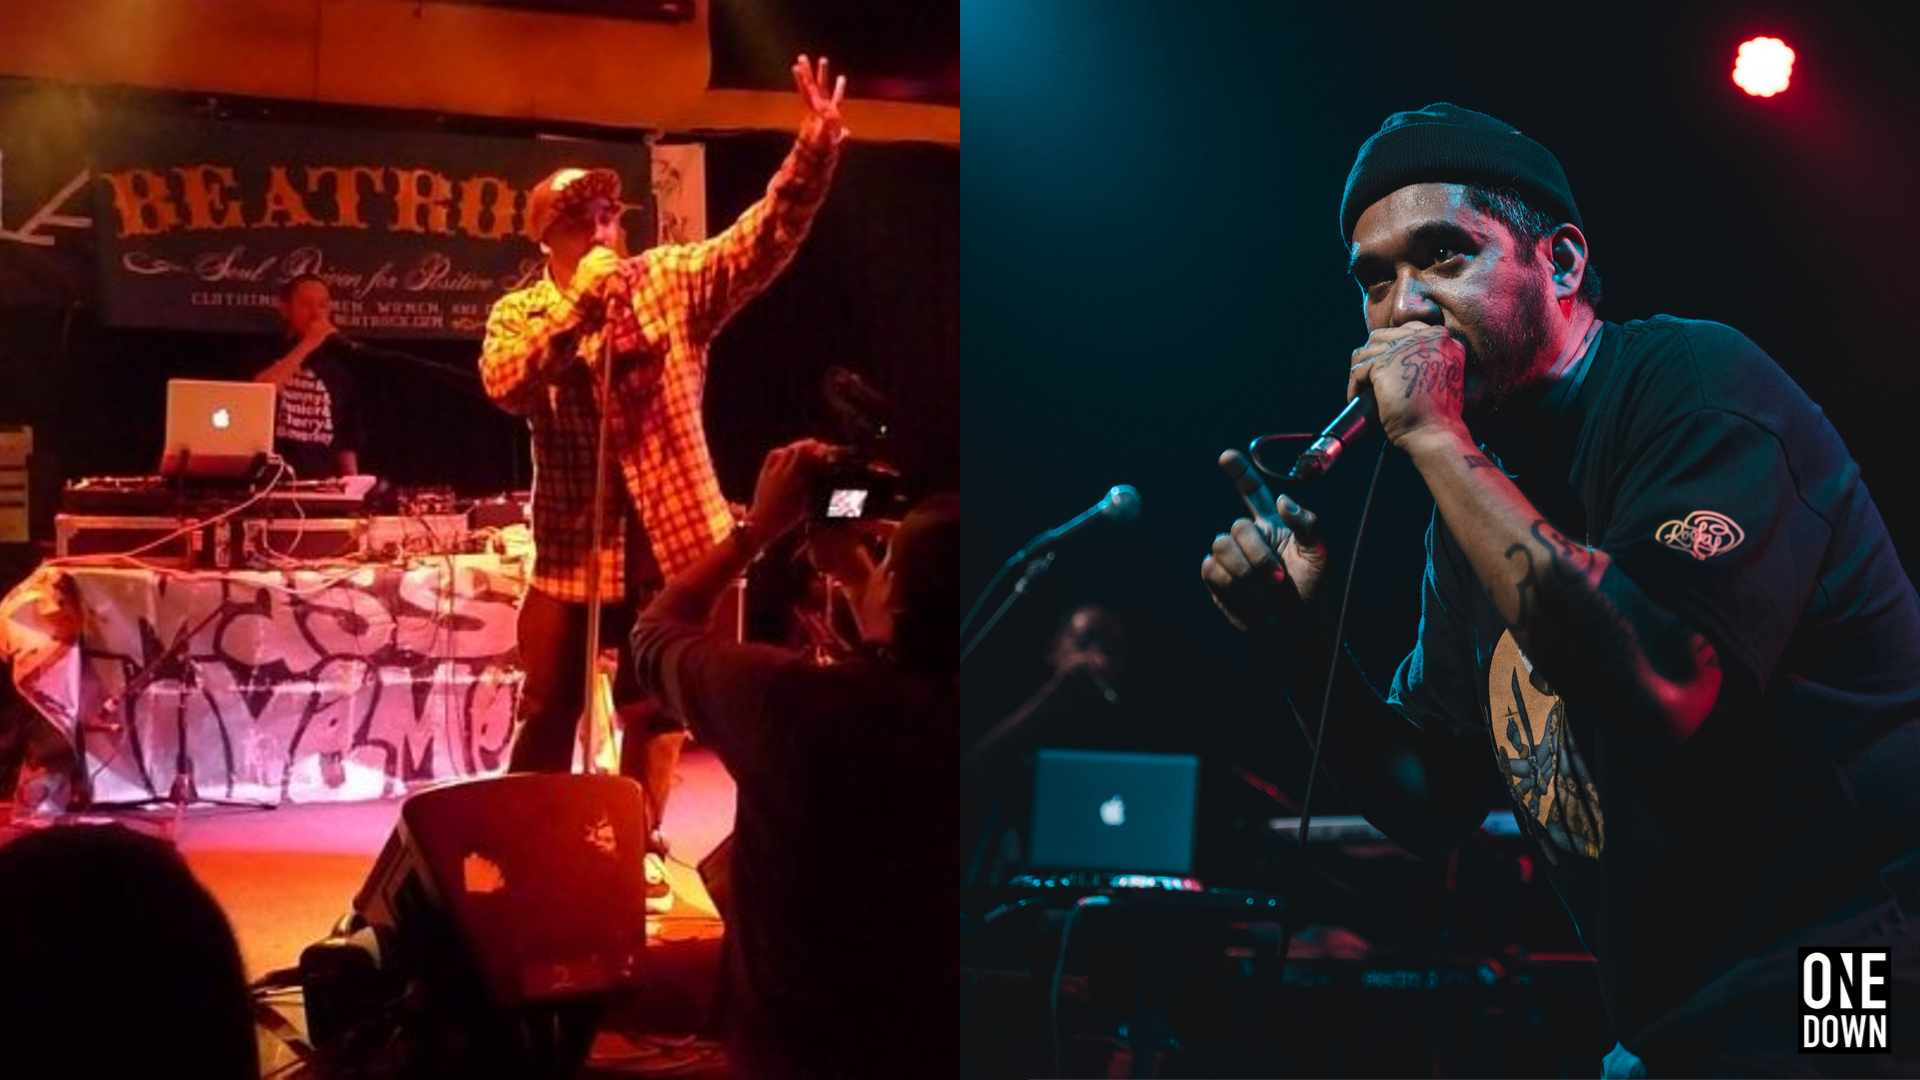 Bambu DePistola, President of Beatrock Music, performing at the Launch in 2009 (left) and at the 10-Year Anniversary Festival in 2019 (right). Left Photo from Beatrock Music | Right Photo by @davidregoso